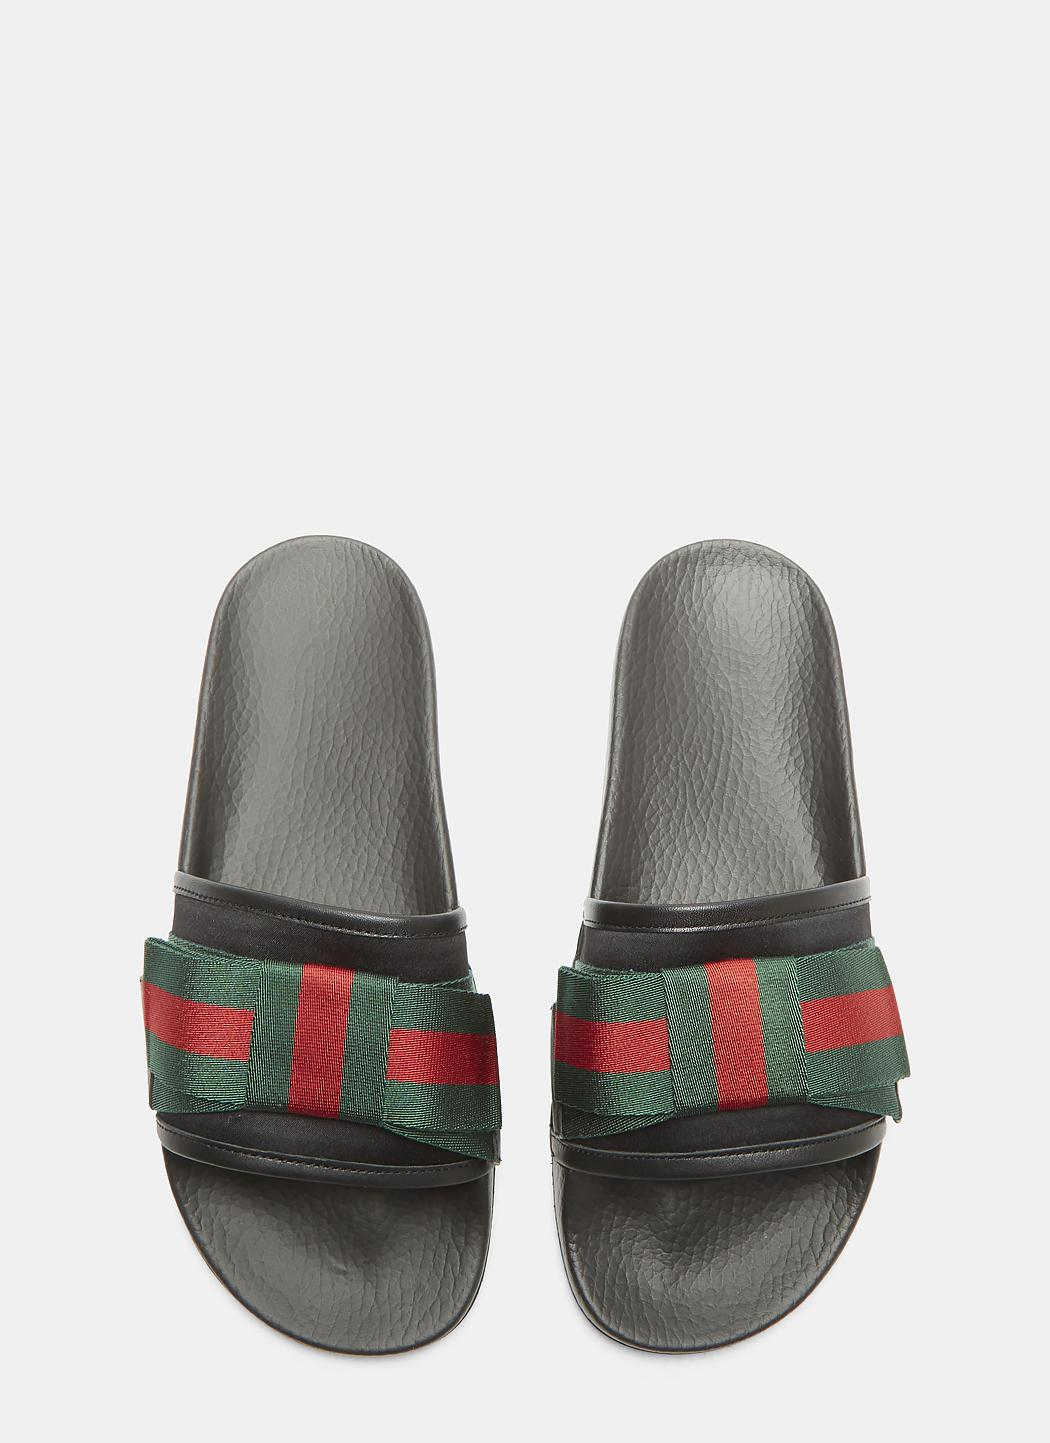 Satin Web Bow Slip-On Sandals Gucci